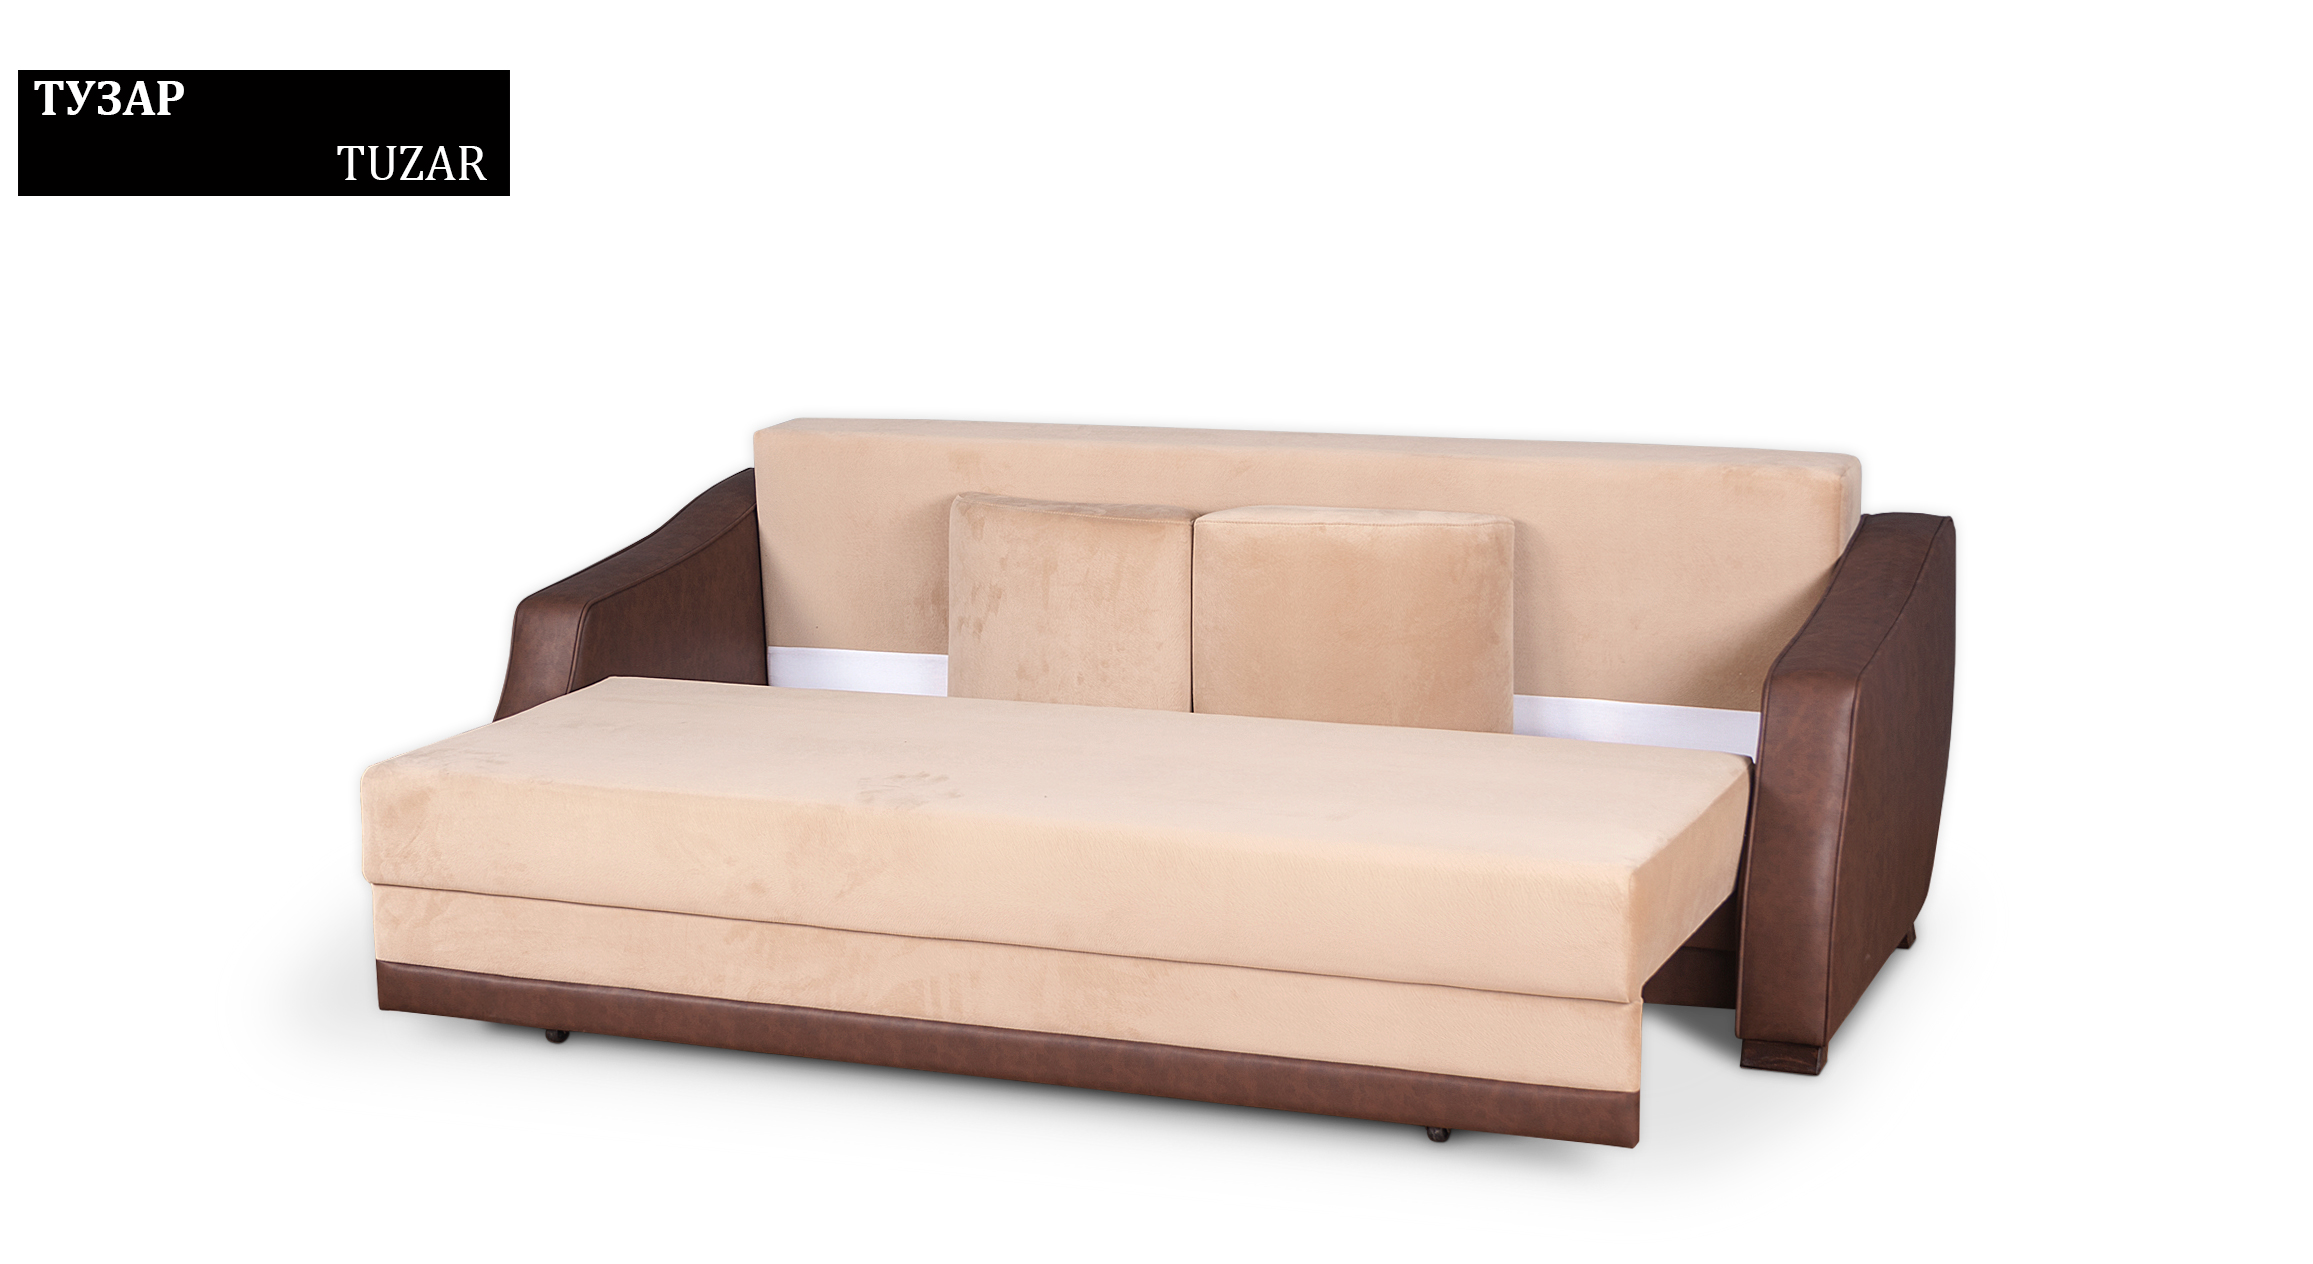 Balkarp Sofa Bed | Ikea Sofa Sleeper | Crate and Barrel Sofa Bed